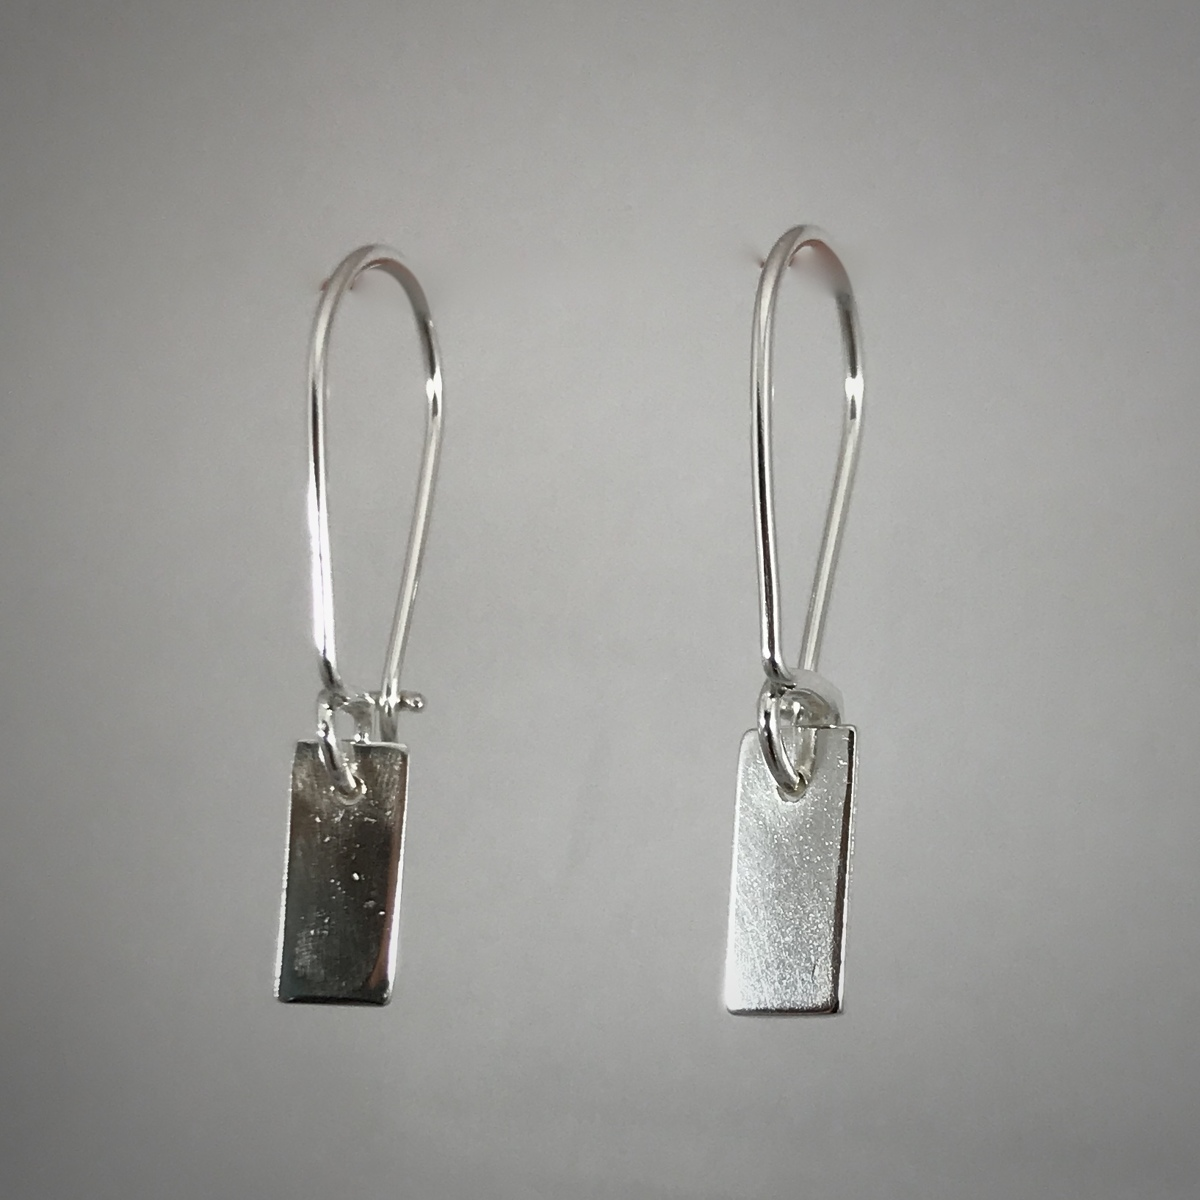 Every Day Silver Earrings #2 (large view)